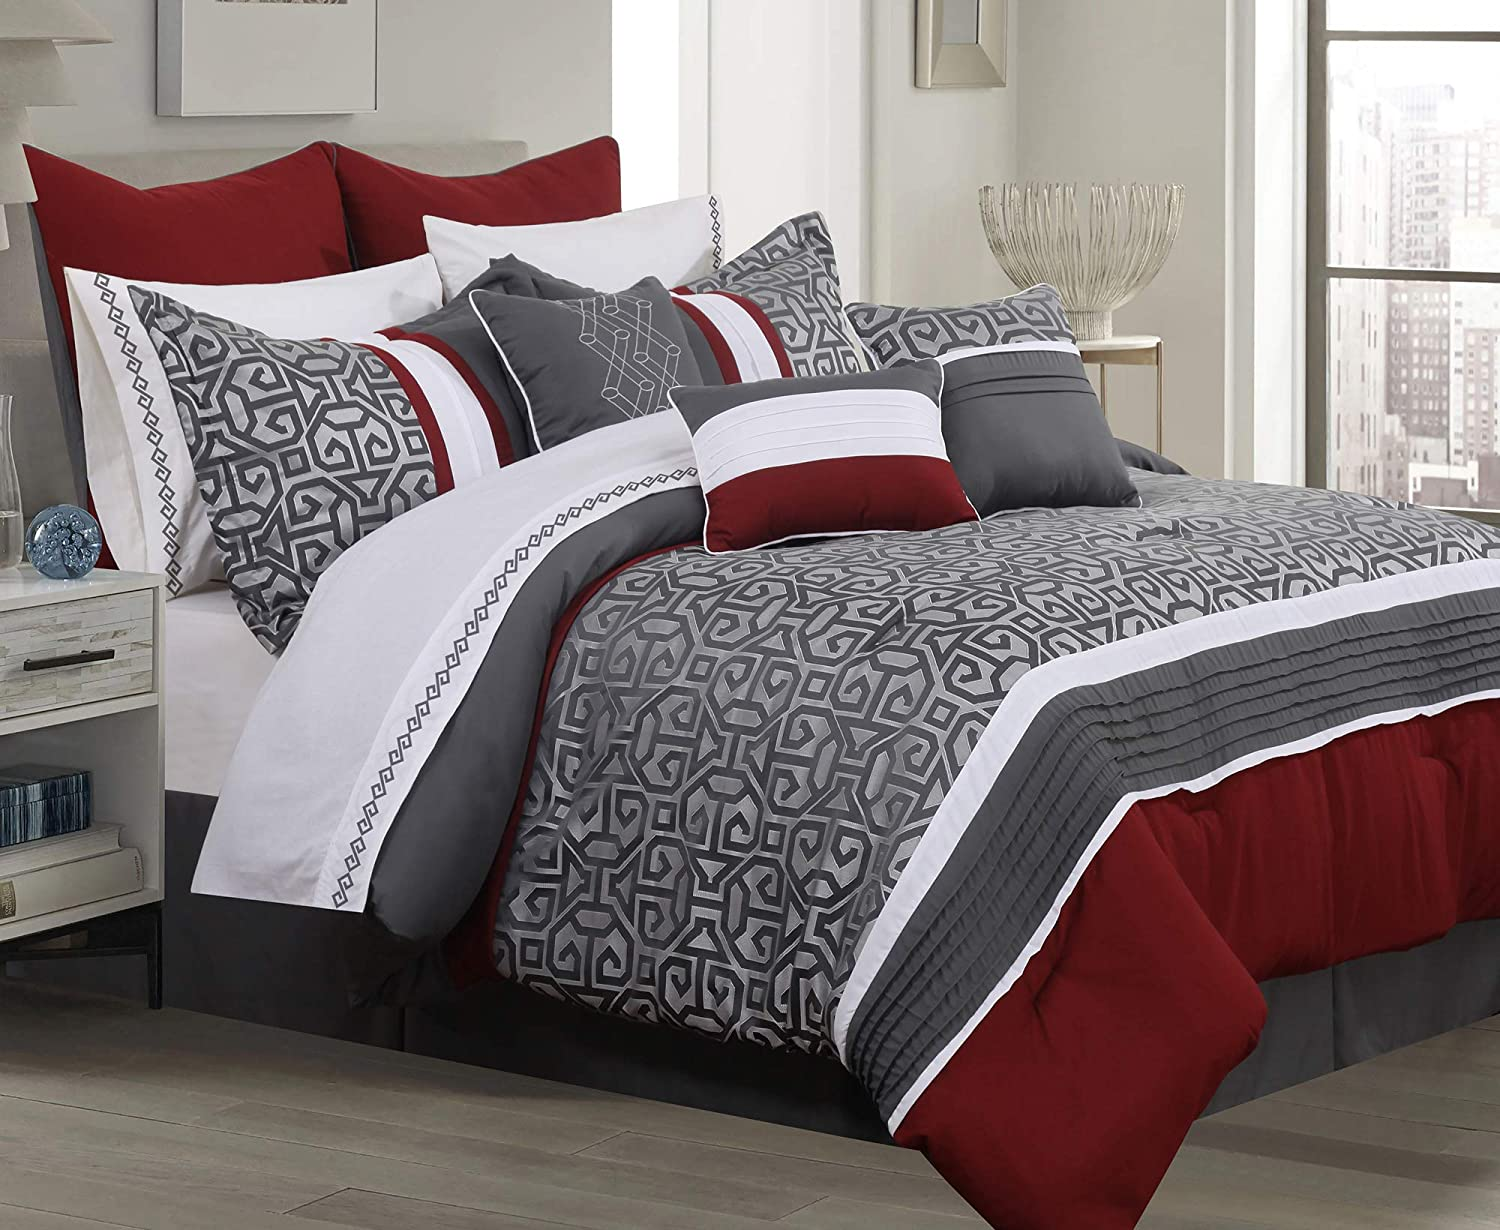 Safdie /& Co Luxury Set Comforter Queen Charcoal 7